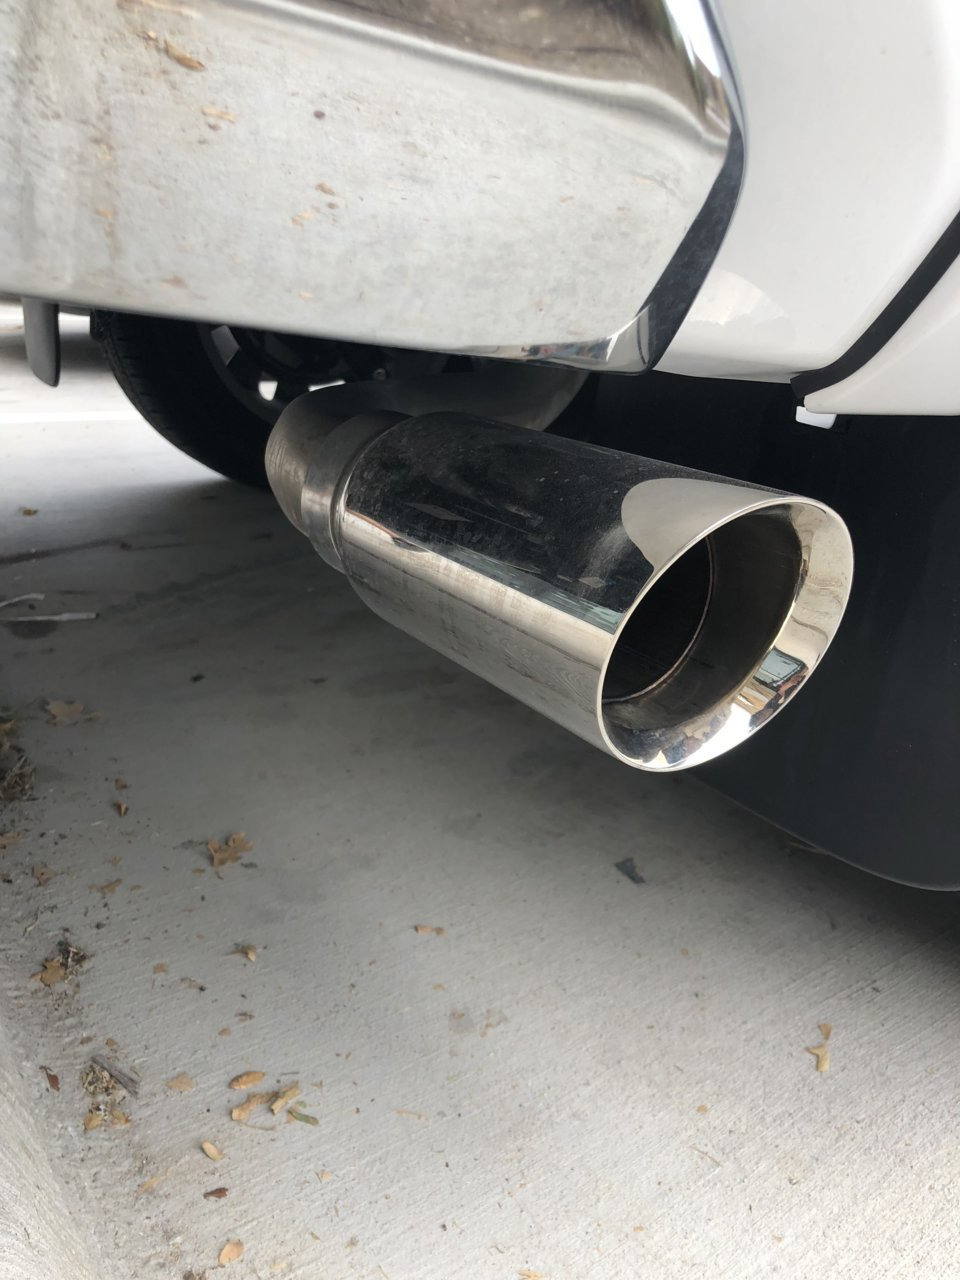 2018 limited crewmax oem exhaust sold